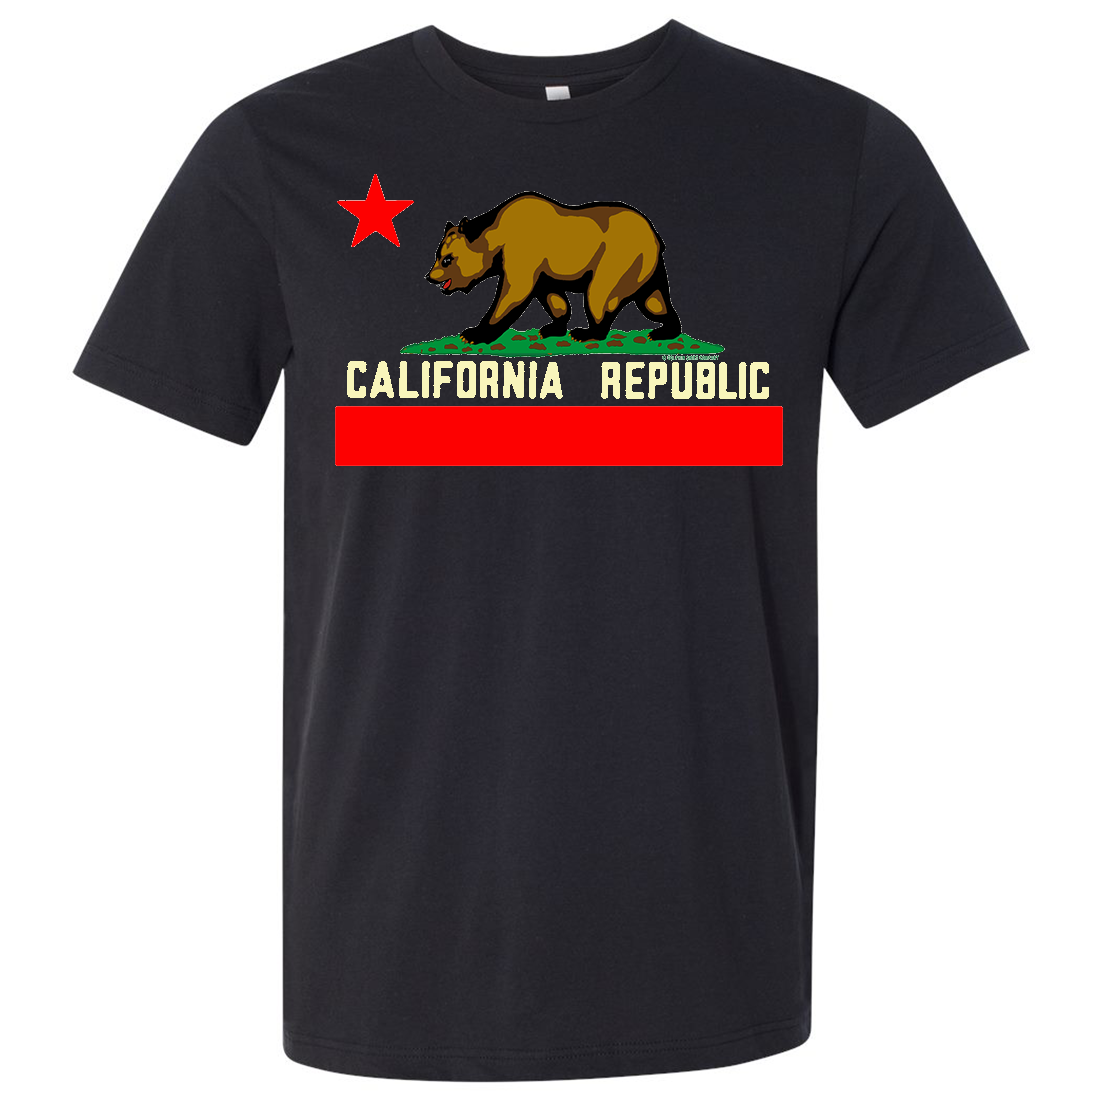 California State Flag Borderless Asst Colors Mens Lightweight Fitted T-Shirt/tee